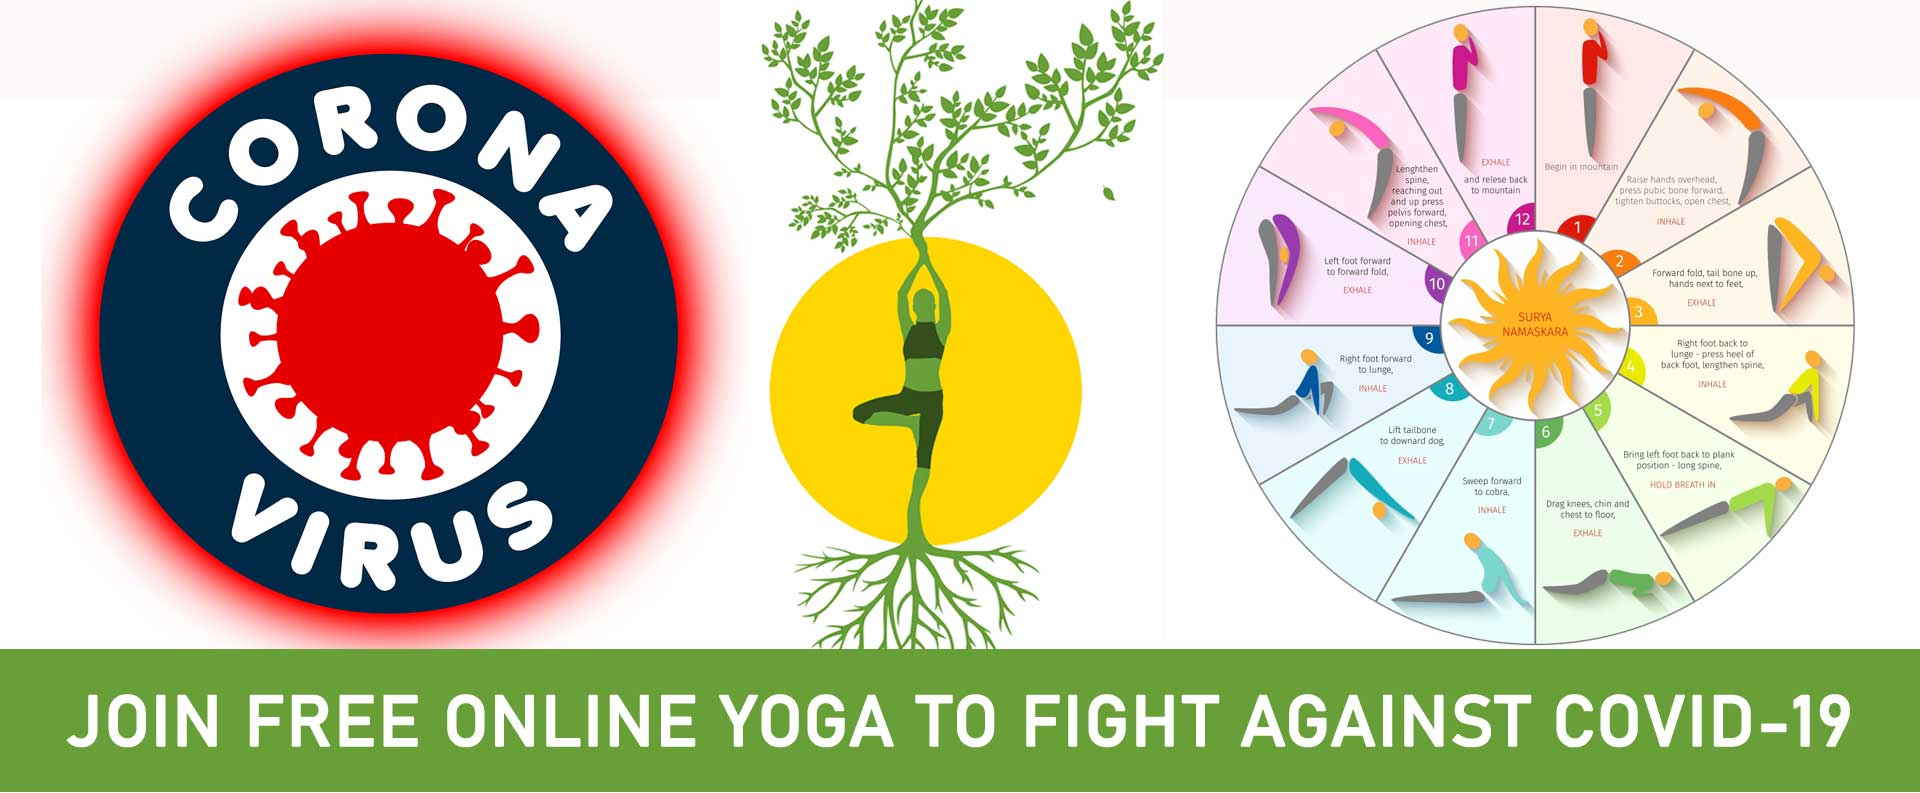 Join Free Online Yoga and Fight against CORONAVIRUS/COVID-19